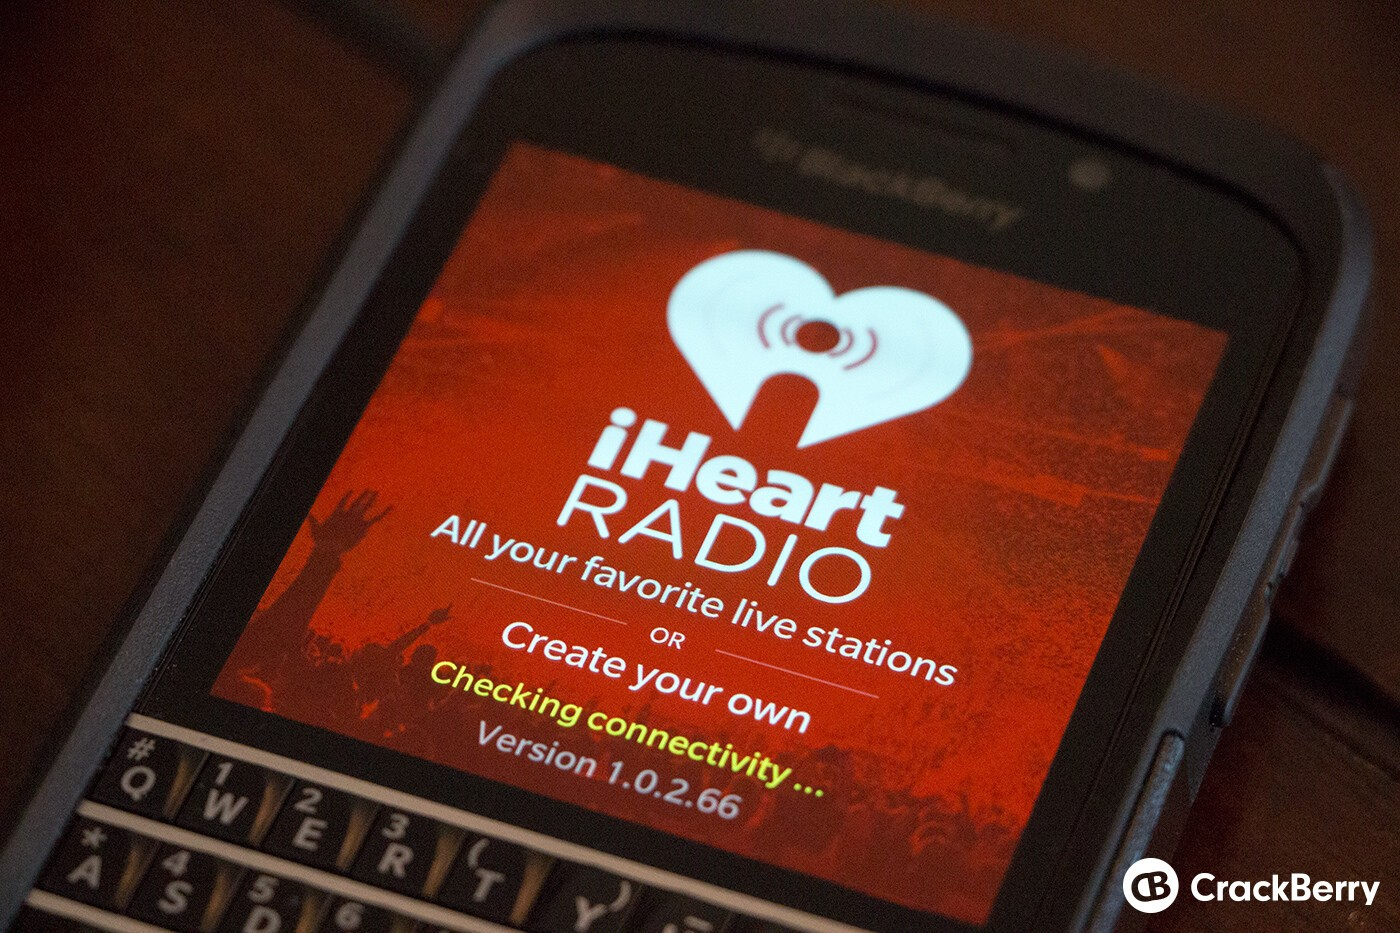 iheartradio for blackberry 10 now available